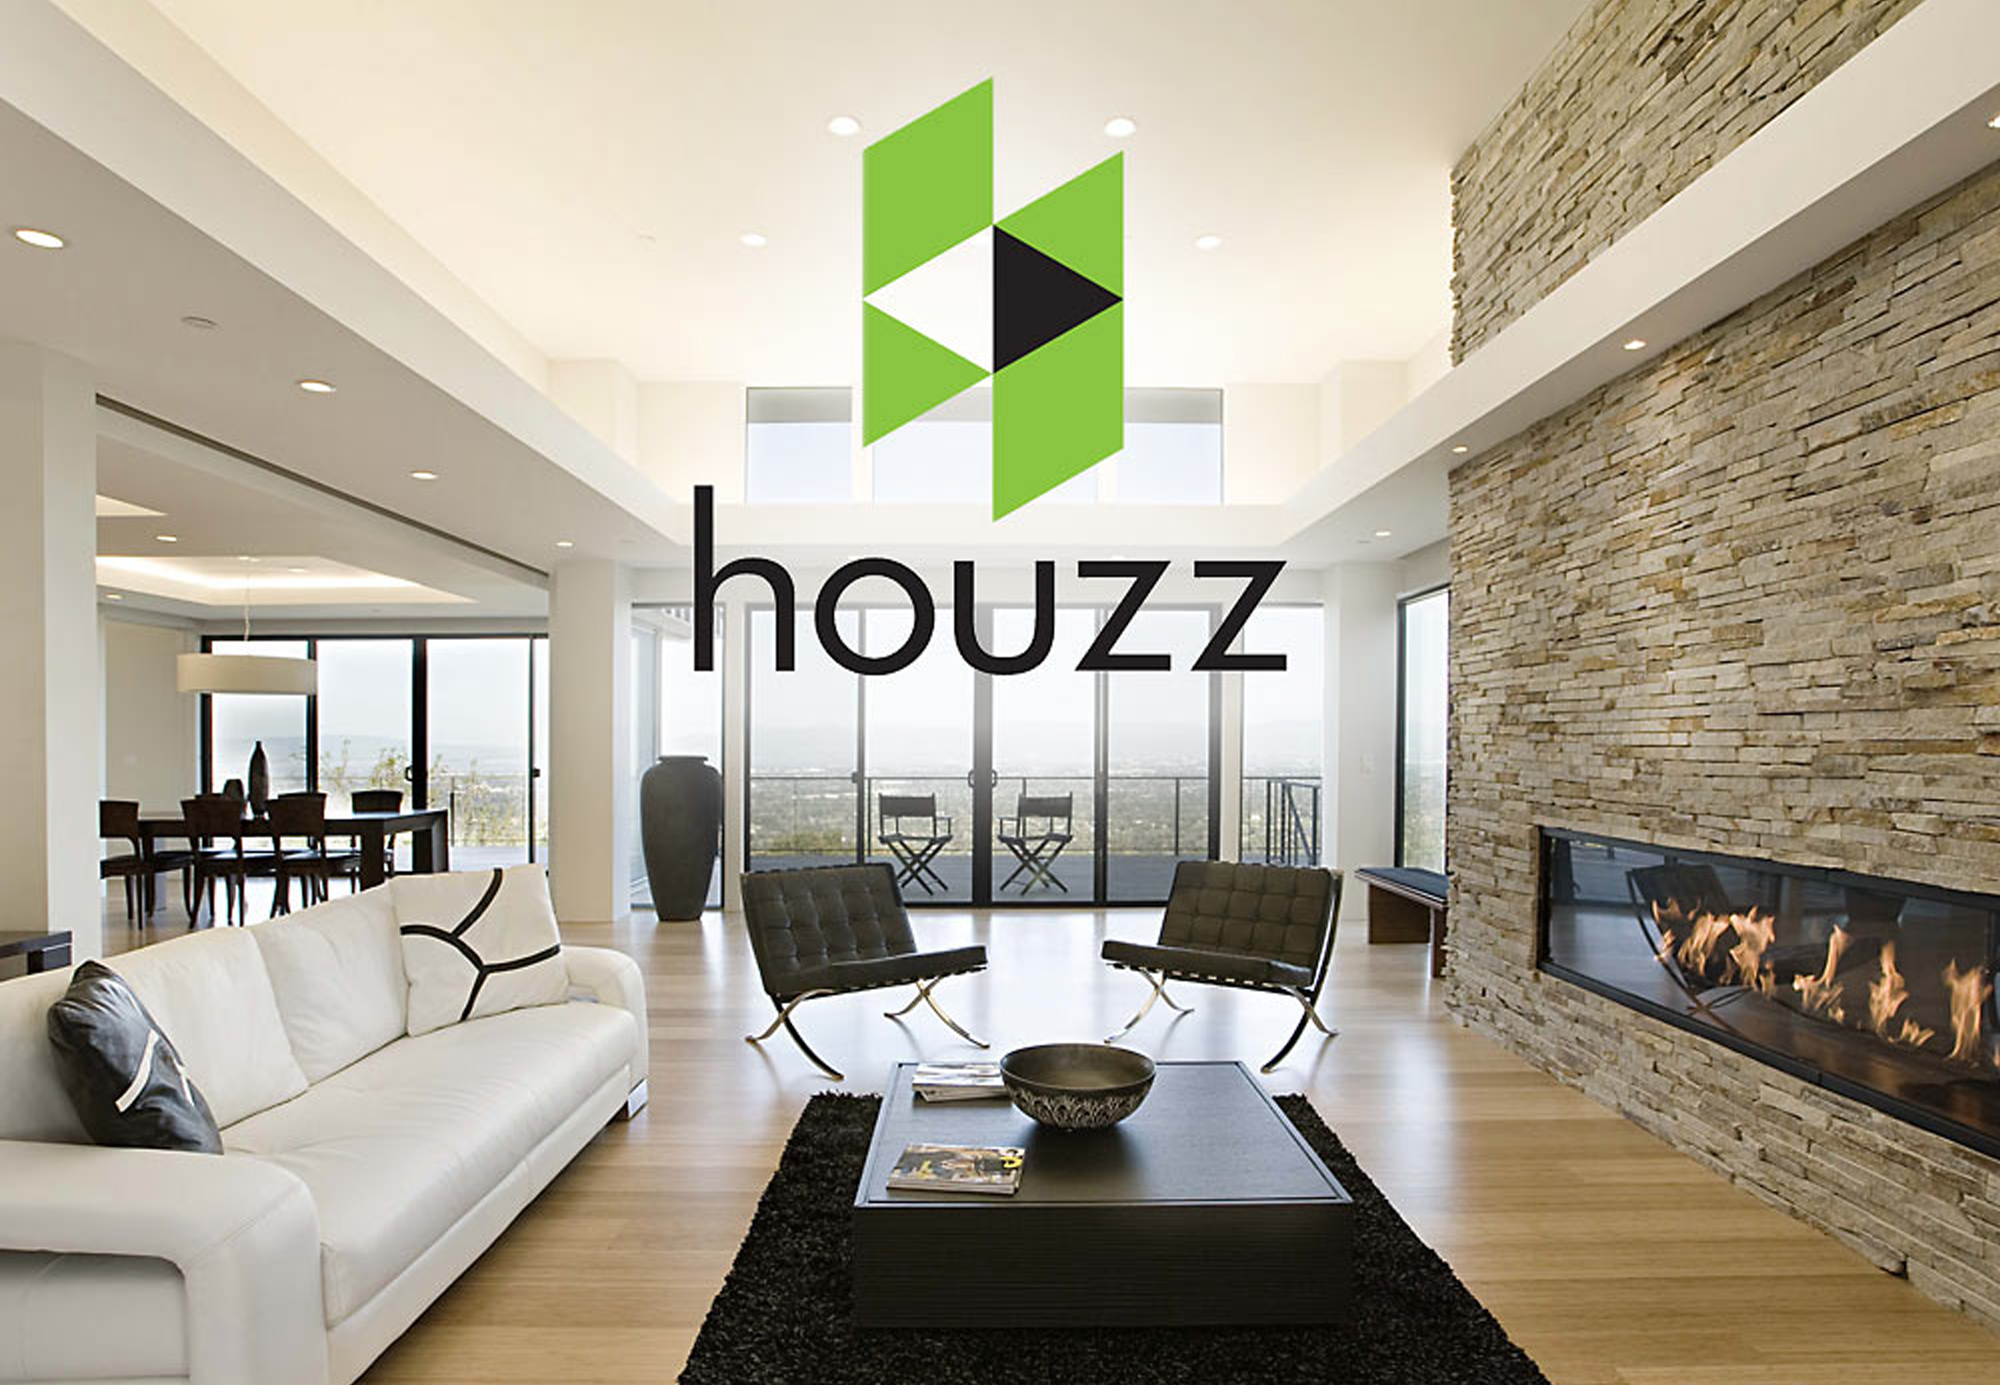 Timber Stone Renovations Timber Stone Renovations Inc Of Winston Salem Raleigh Nc Awarded Best Of Houzz 2018